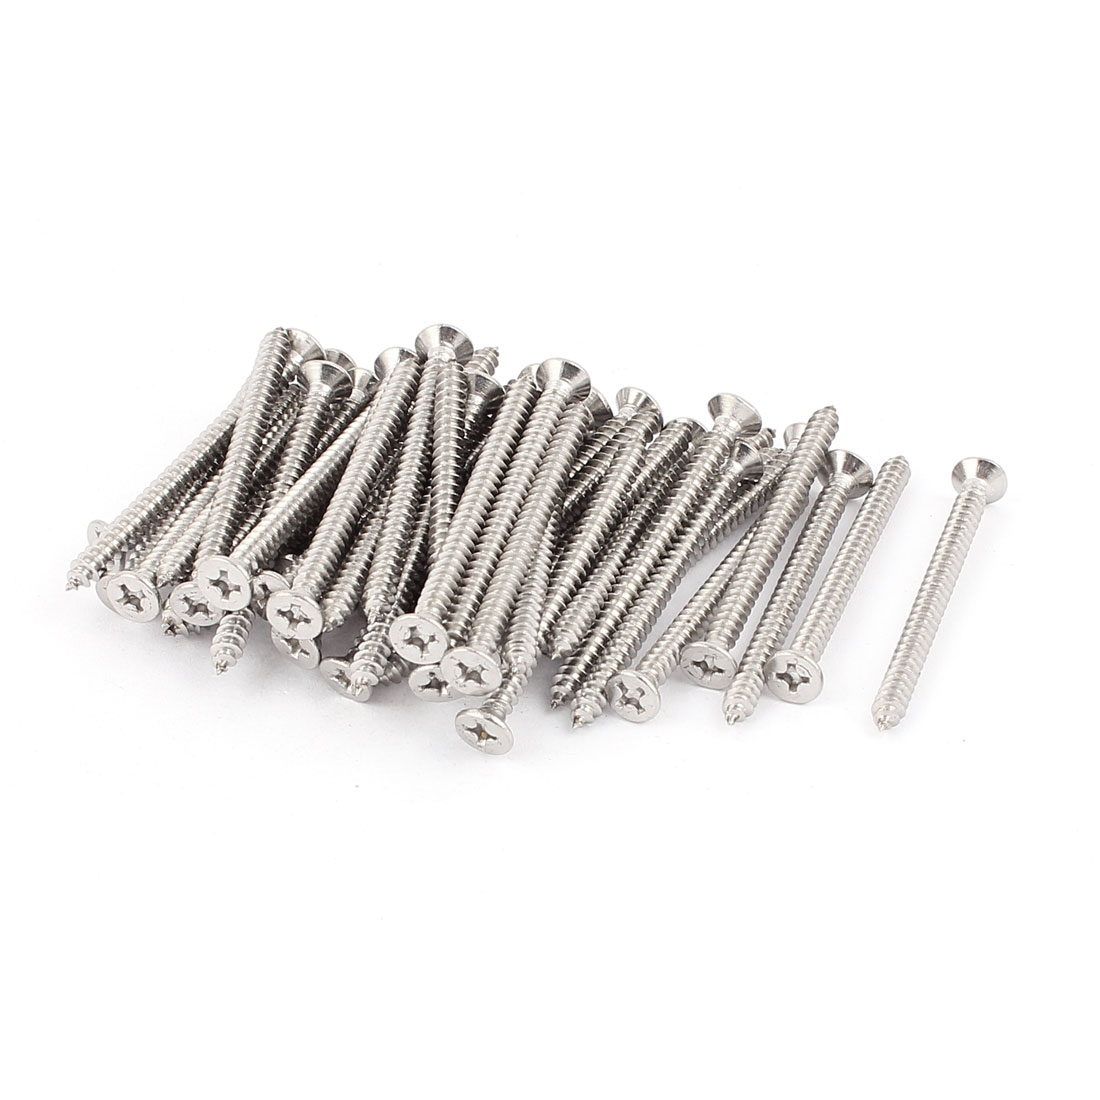 3.9mm x 50mm Stainless Steel Countersunk Cross Head Self Tapping Screw 50 Pcs